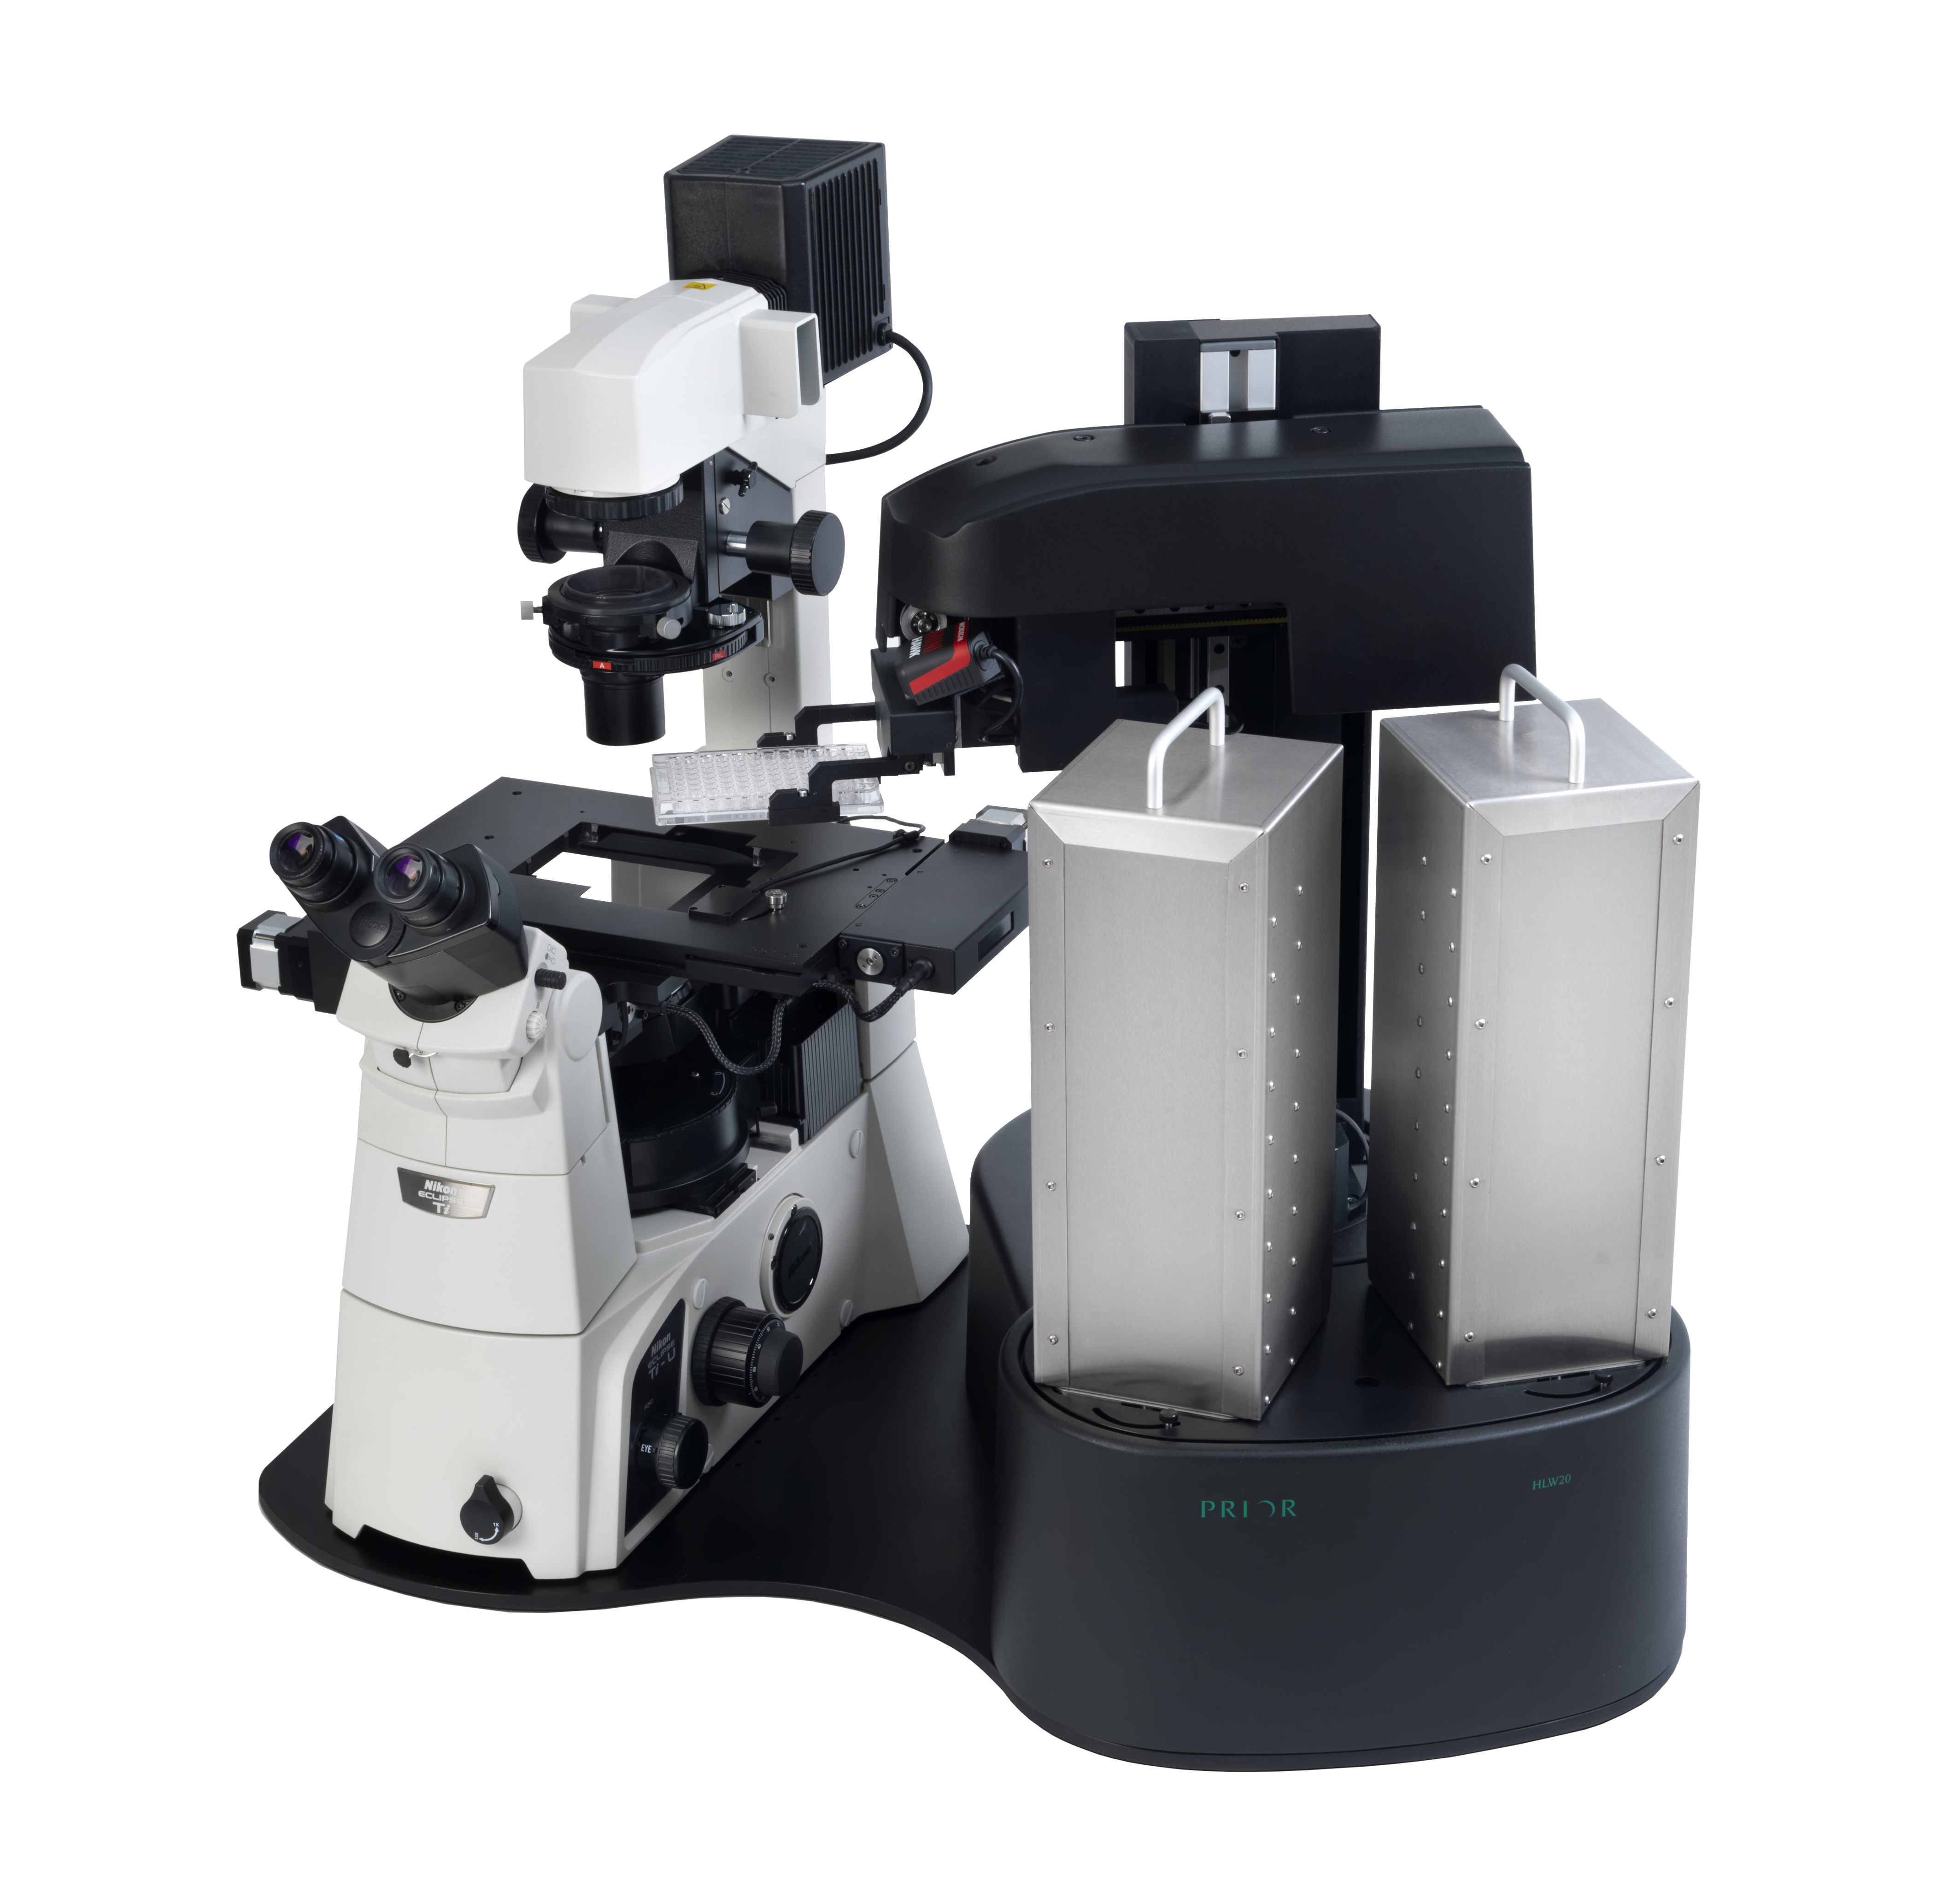 Prior offer a range of microscope components including robotic sample holders, Piezo assemblies and more